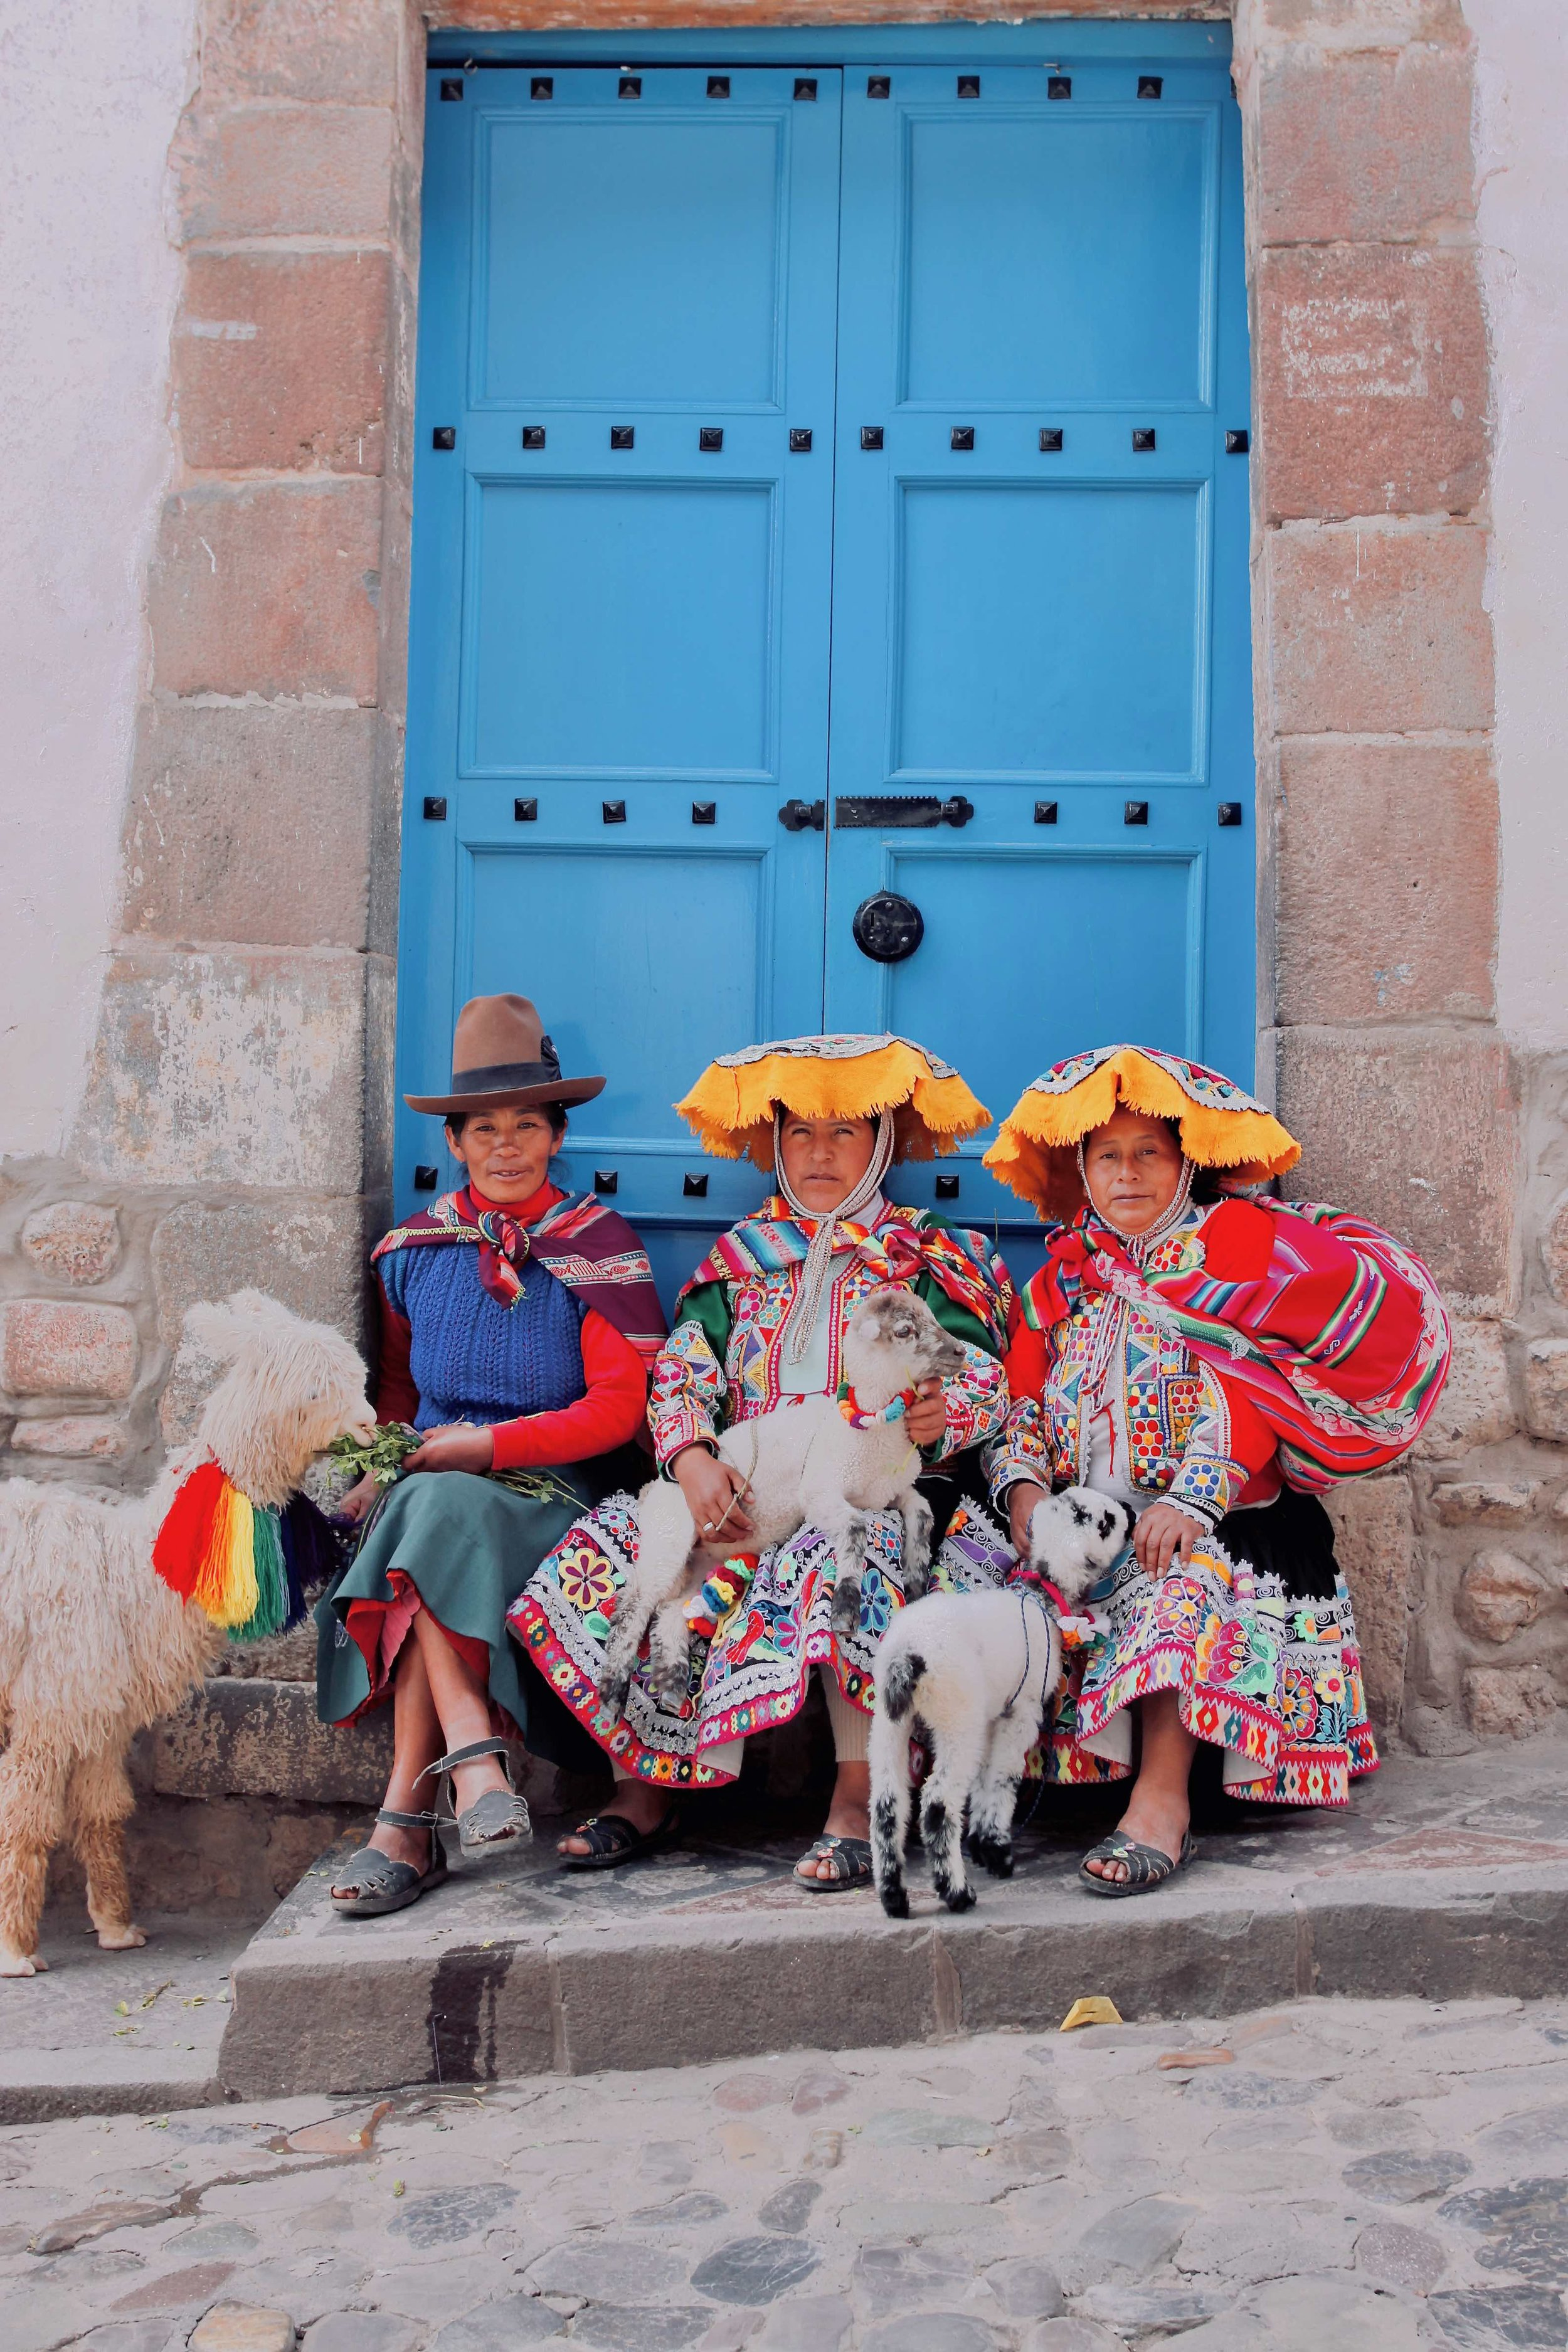 Cusco photo collection llamas and blue doors